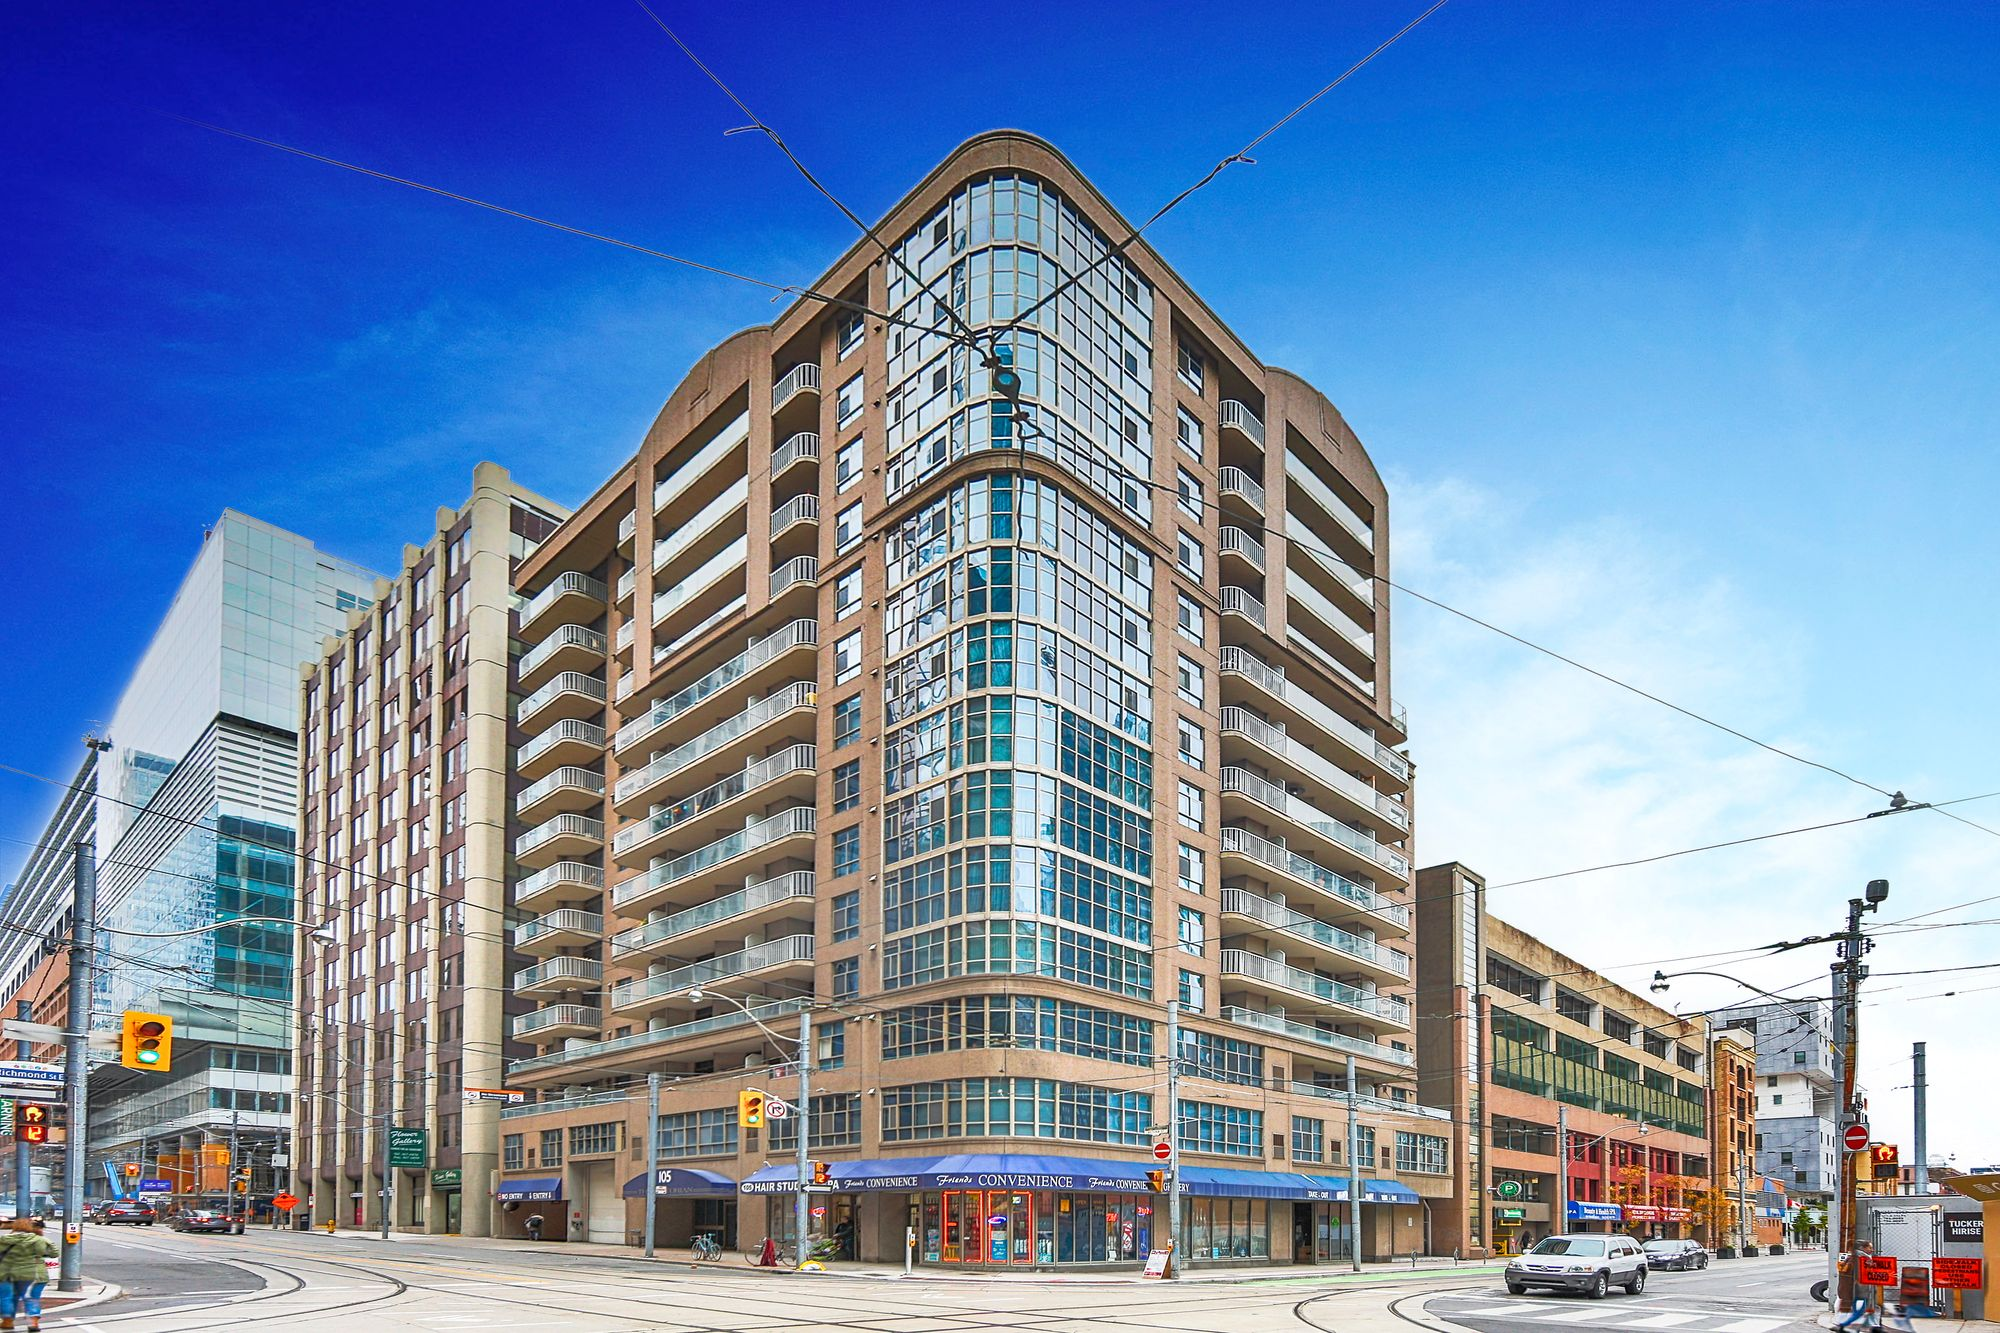 105 Victoria St. This condo at The Victorian is located in  Downtown, Toronto - image #1 of 4 by Strata.ca